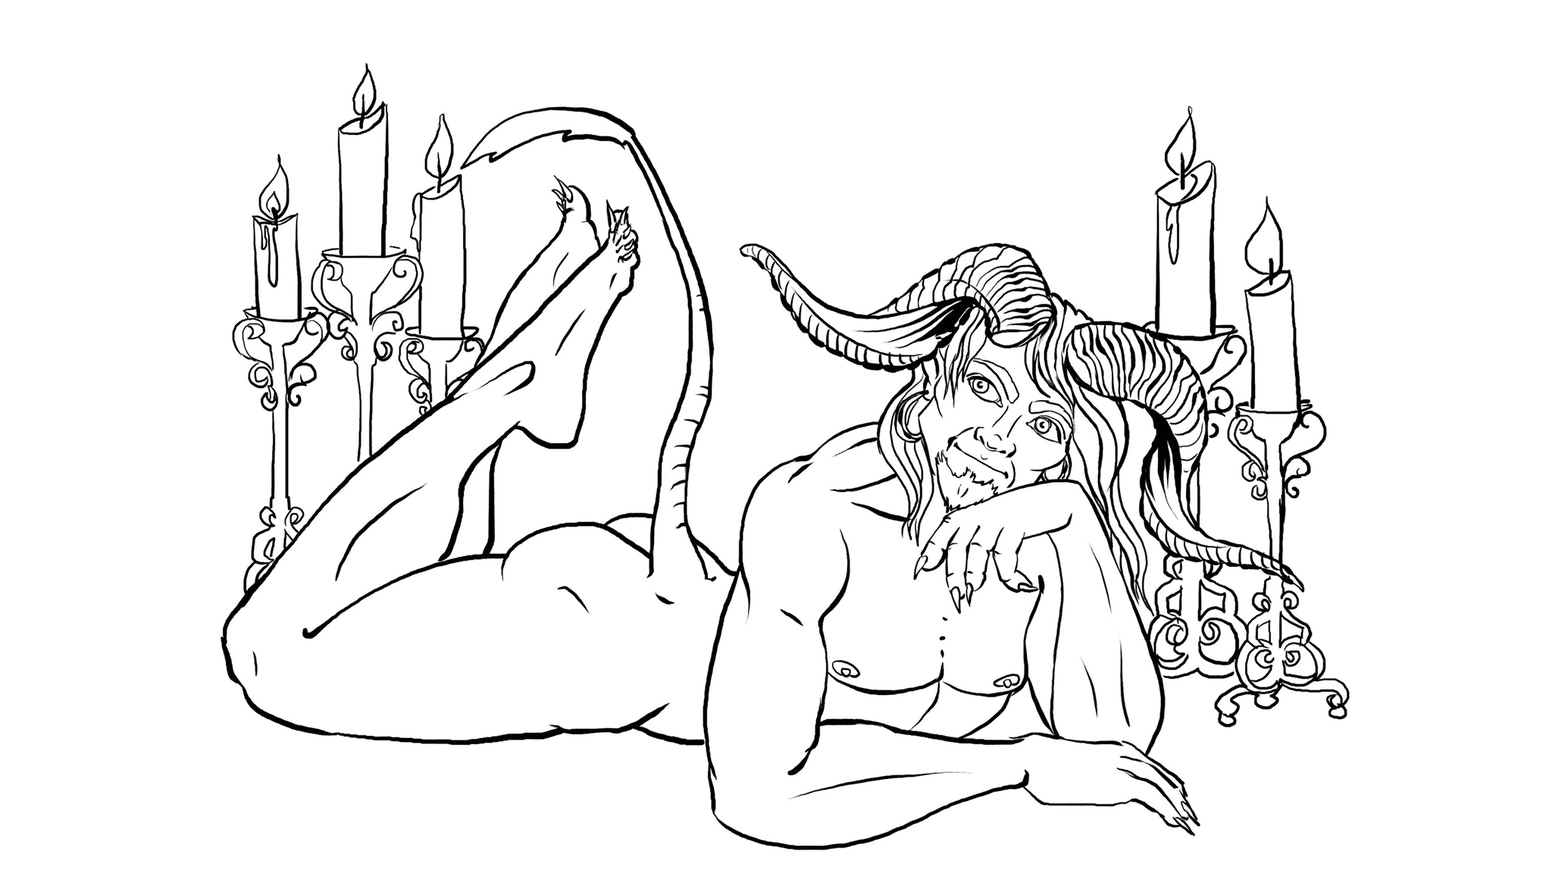 Dungeons After Dark is an adult coloring book of fantasy races and creatures in pin-up poses. Fantasy-tastic!